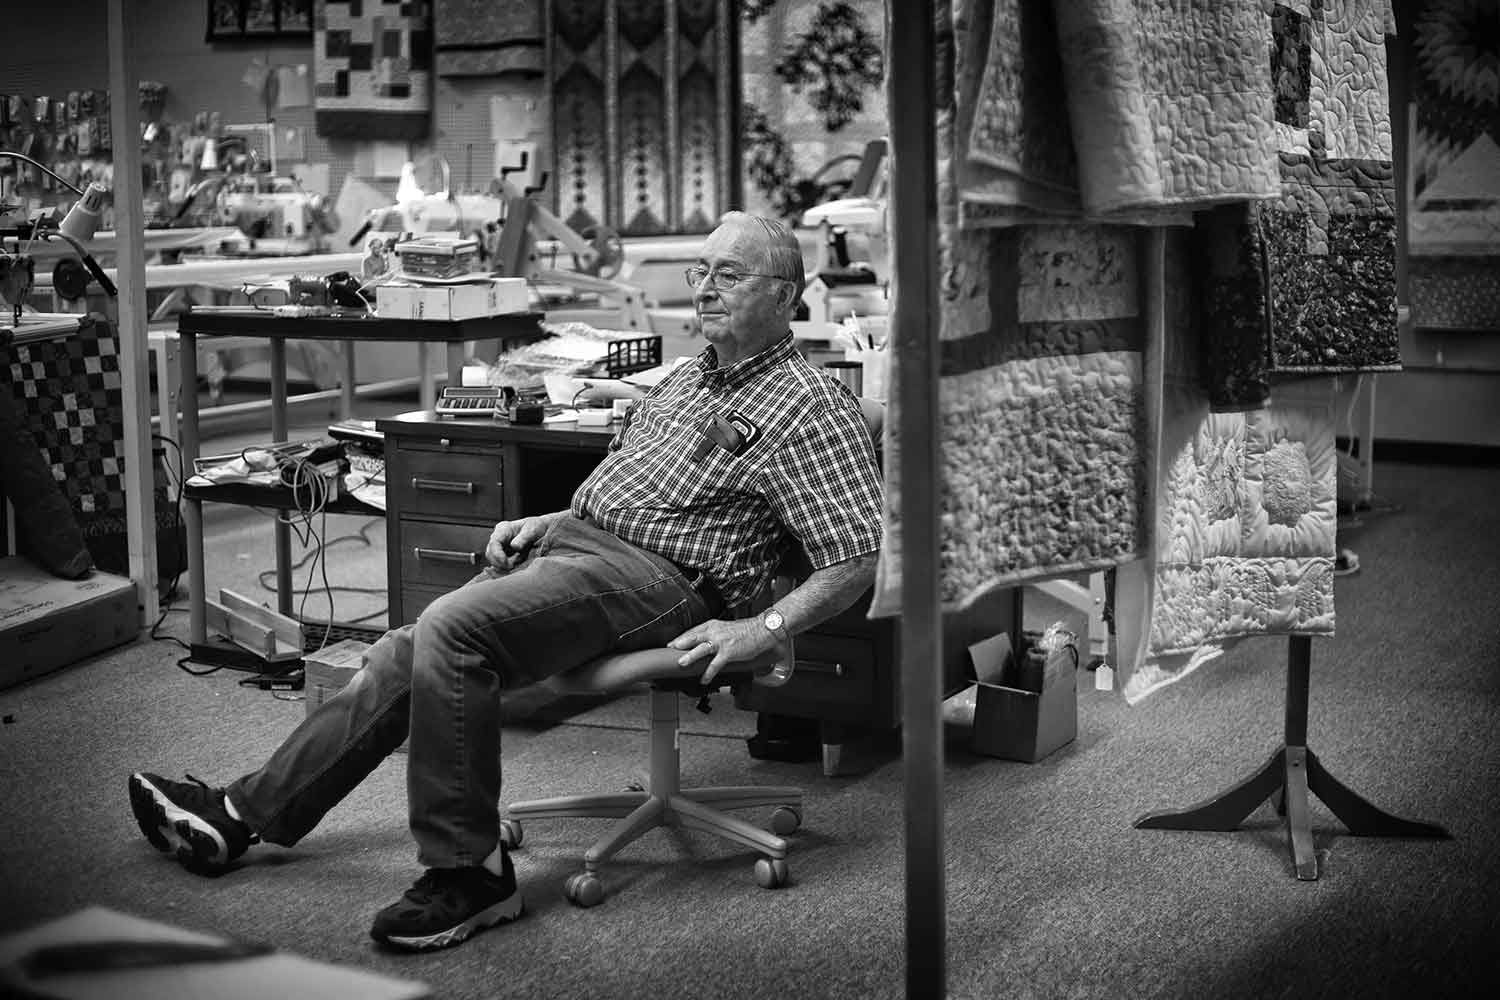 """Wayne Morgan, owner of The Quilt Patch. Wayne and his wife, Joyce, opened the store over 12 years ago after retiring from previous professions. They """"didn't retire well"""" and refused to be bored. photo by Kellie Ward - 2019"""